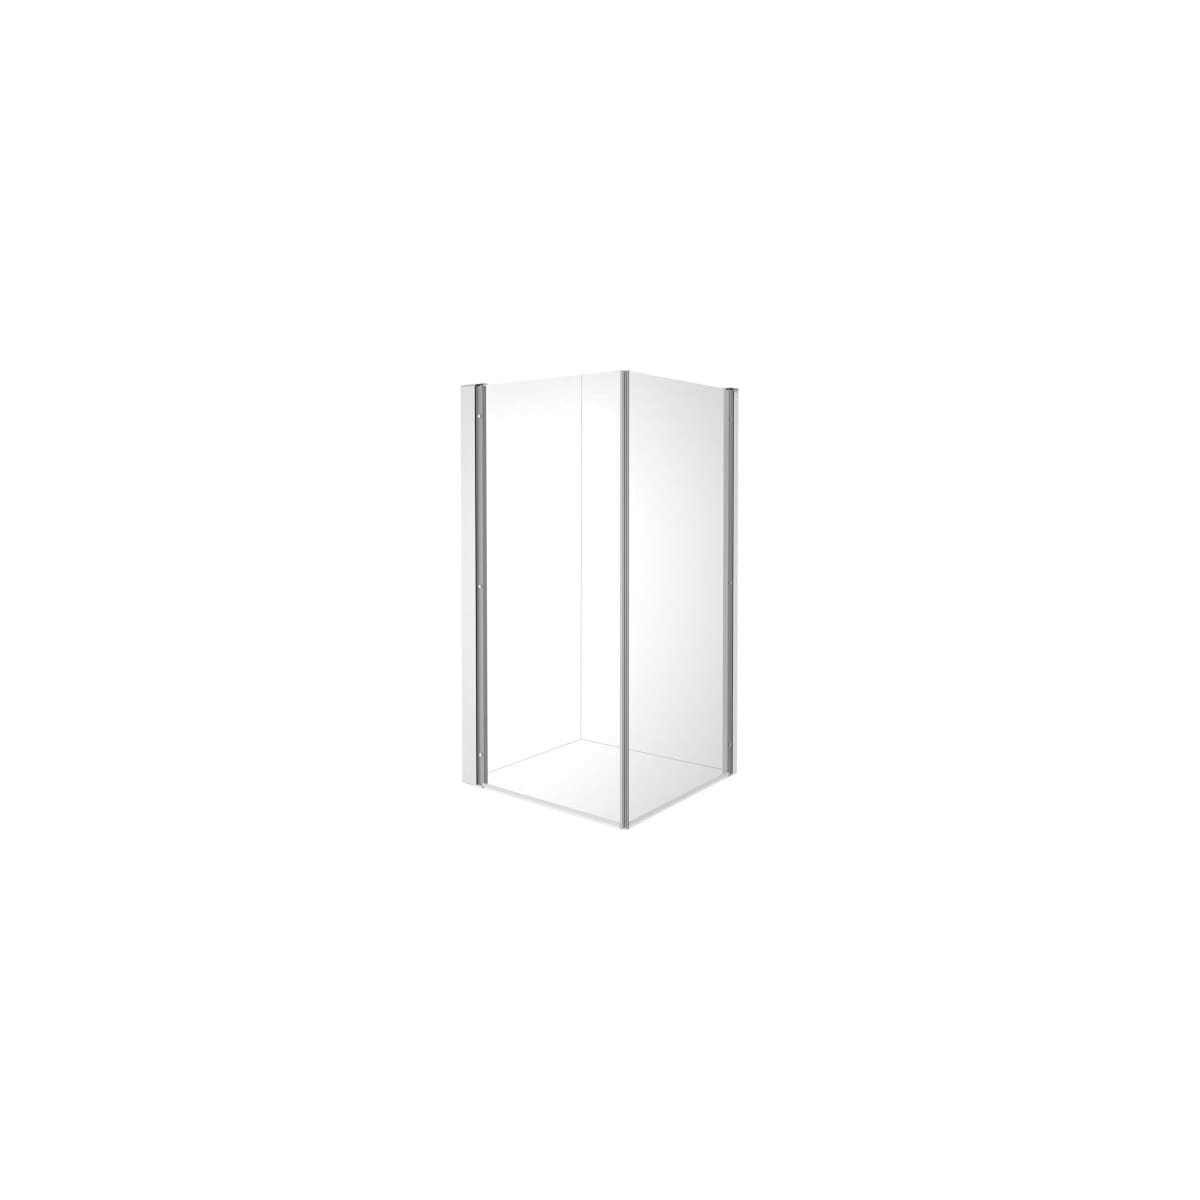 """Duravit OpenSpace B 77-1/2"""" High x 30-1/2"""" Wide x 28-1/2"""" Deep Hinged Frame Shower Enclosure with 2 Glass Panels"""